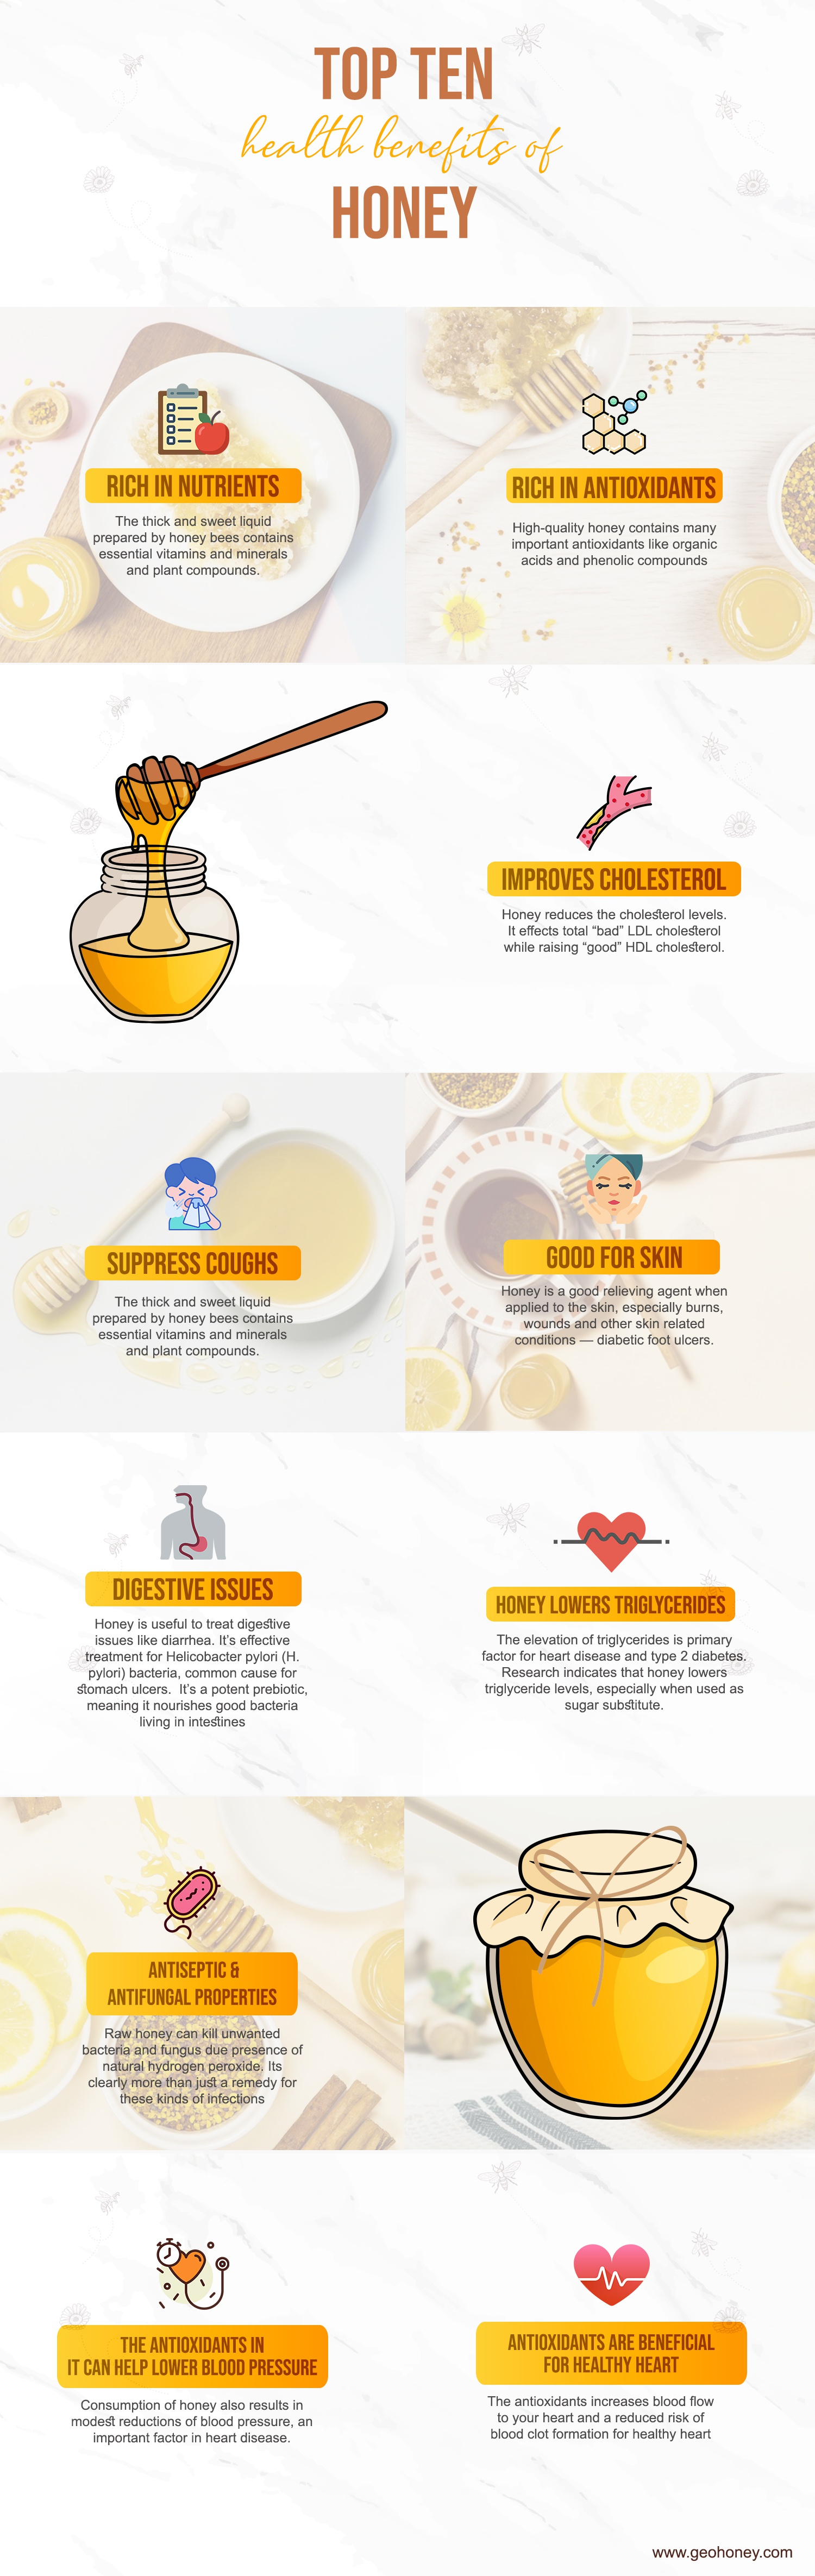 Benefits Of Honey Water For Skin what are the top 10 surprising health benefits of honey? - quora